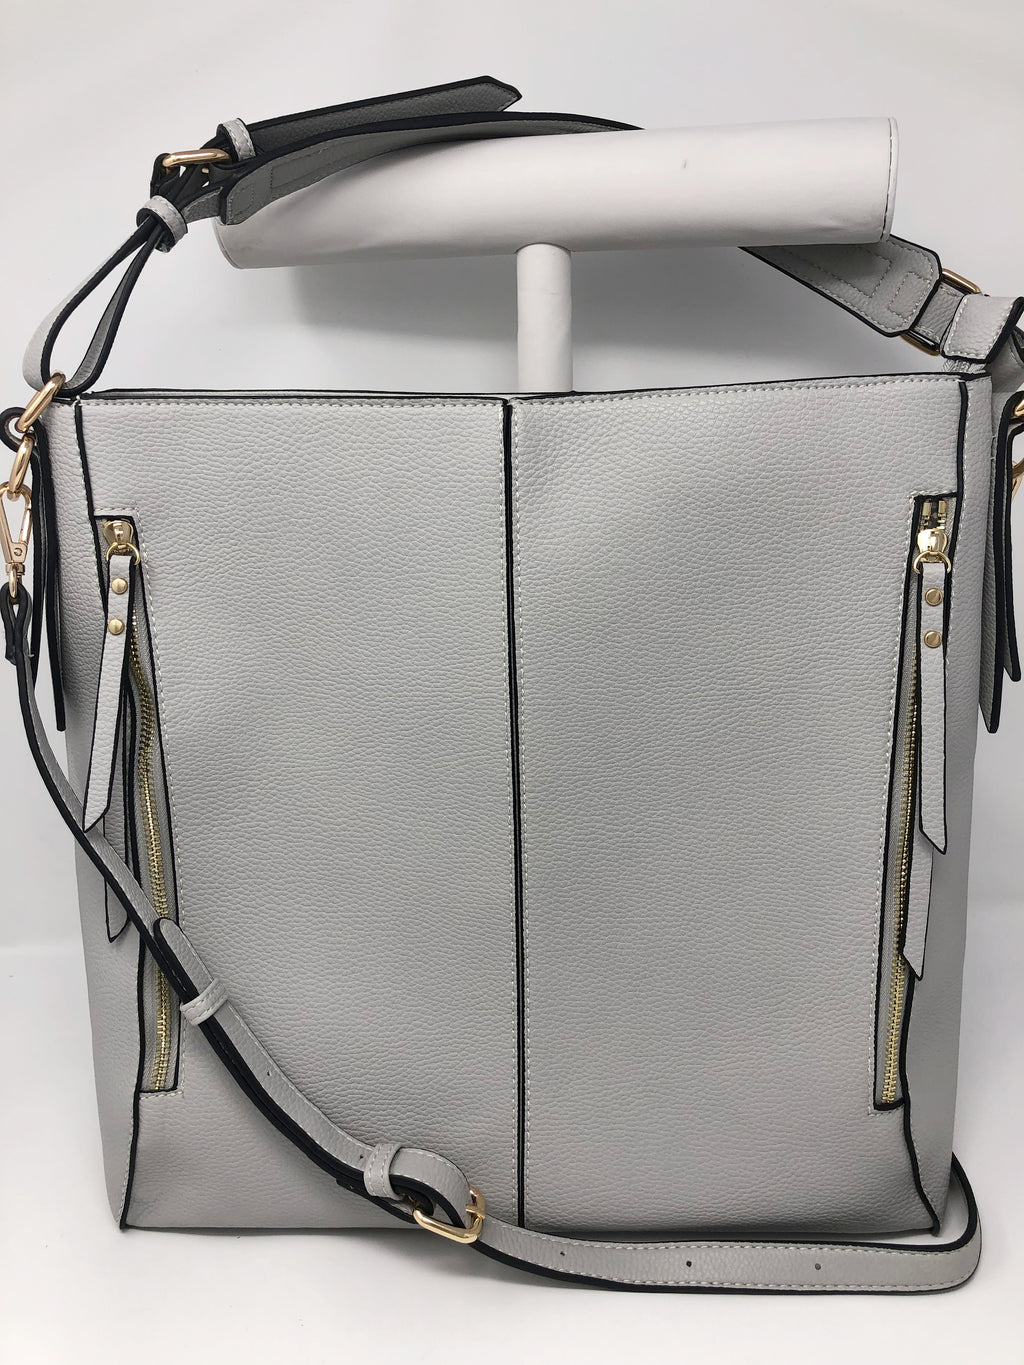 SALE! Large Zipper Bucket Bag in Grey